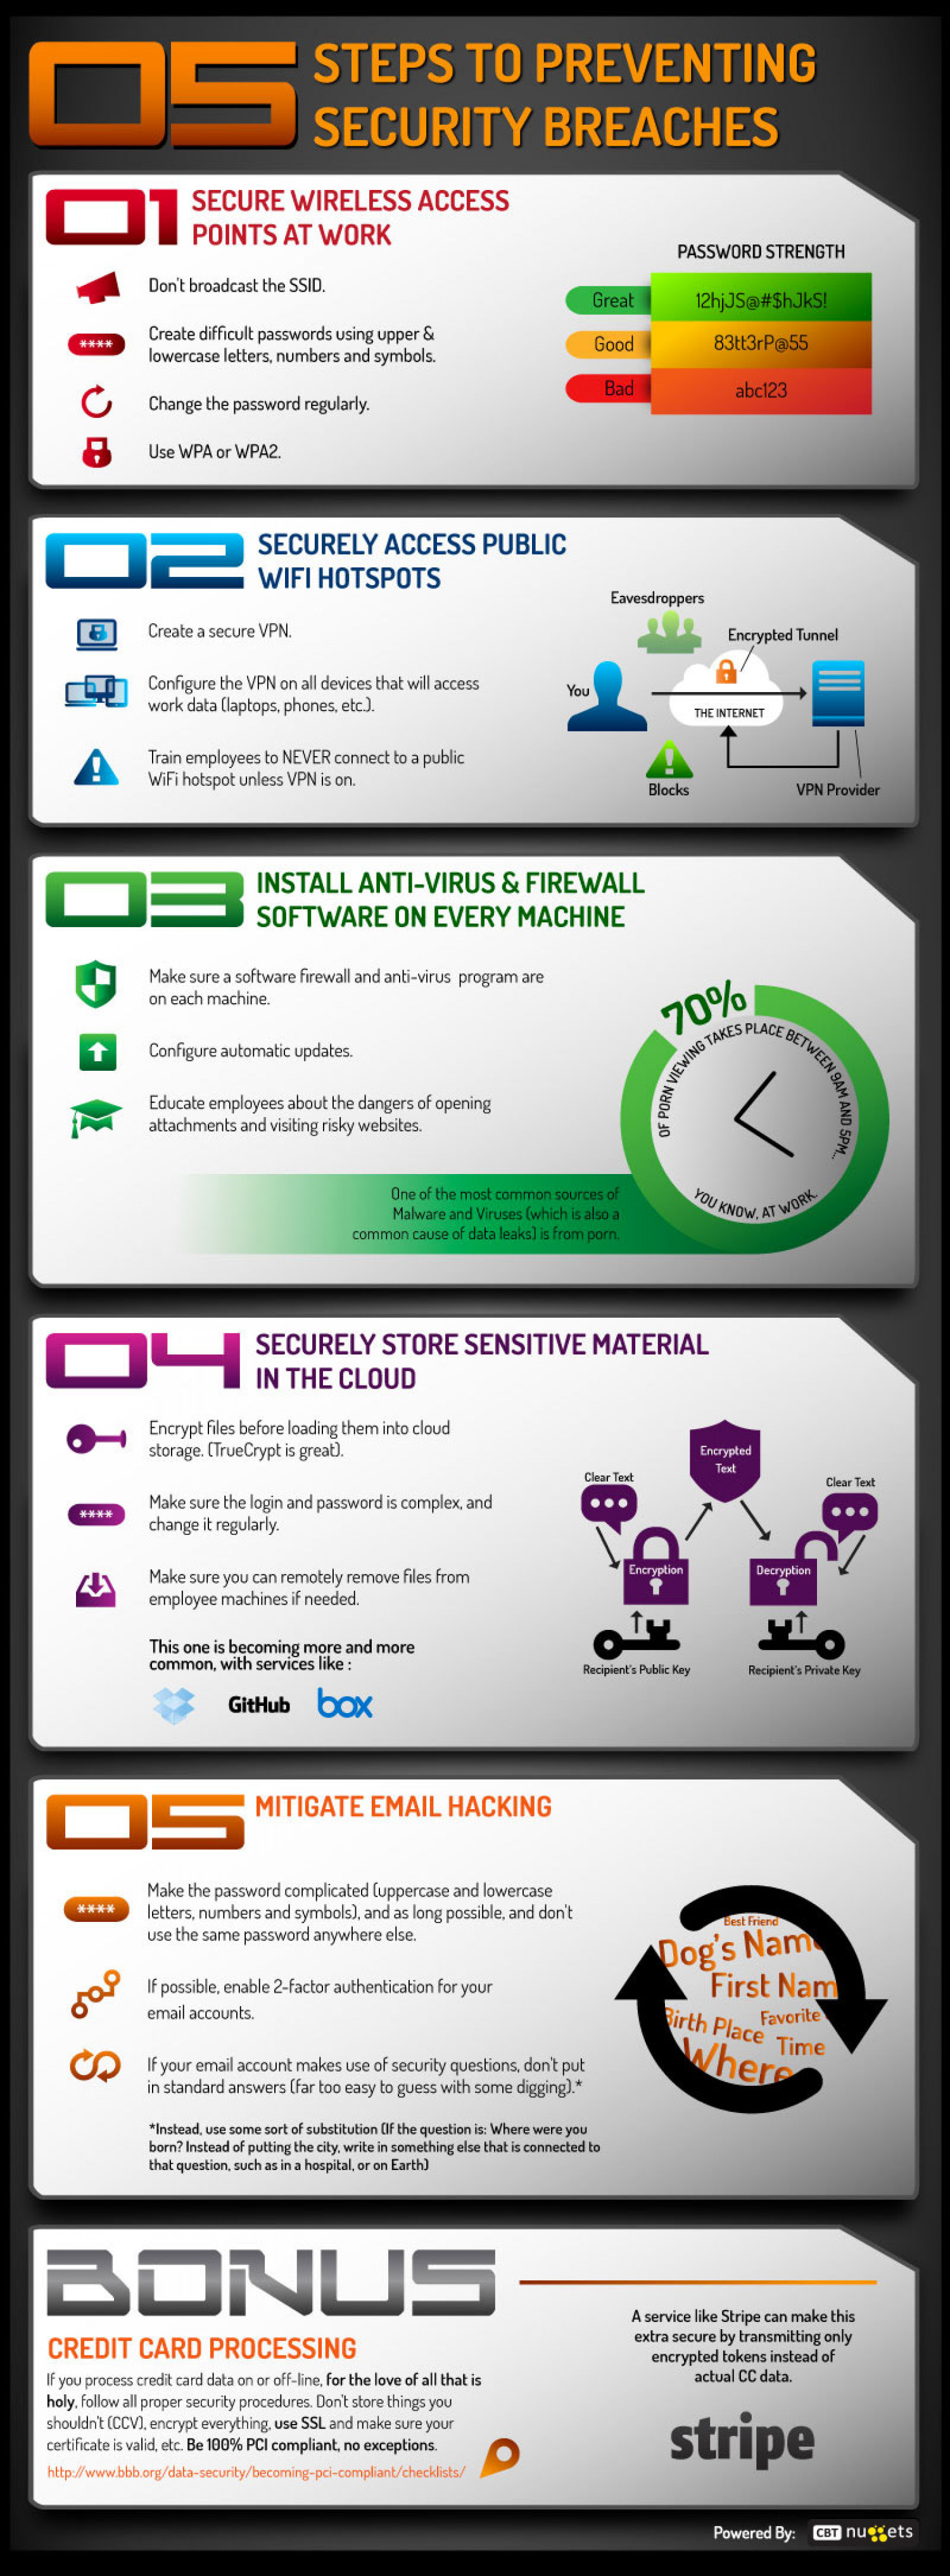 5 Steps for Preventing Security Breaches Infographic